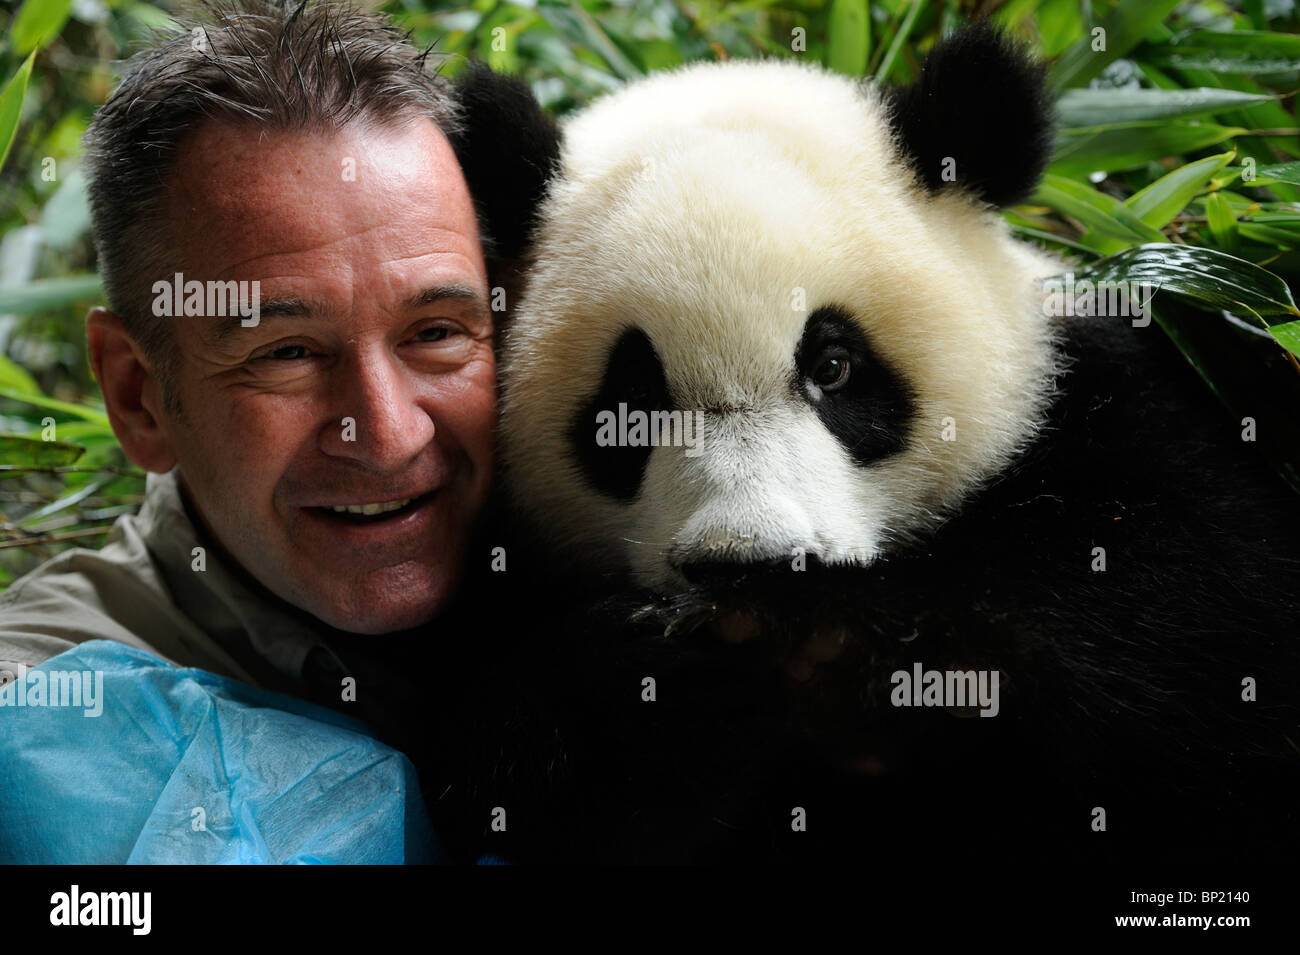 Wildlife presenter Nigel Marven poses with a one-year-old female panda called Yali at Chengdu Panda Base in Sichuan, - Stock Image